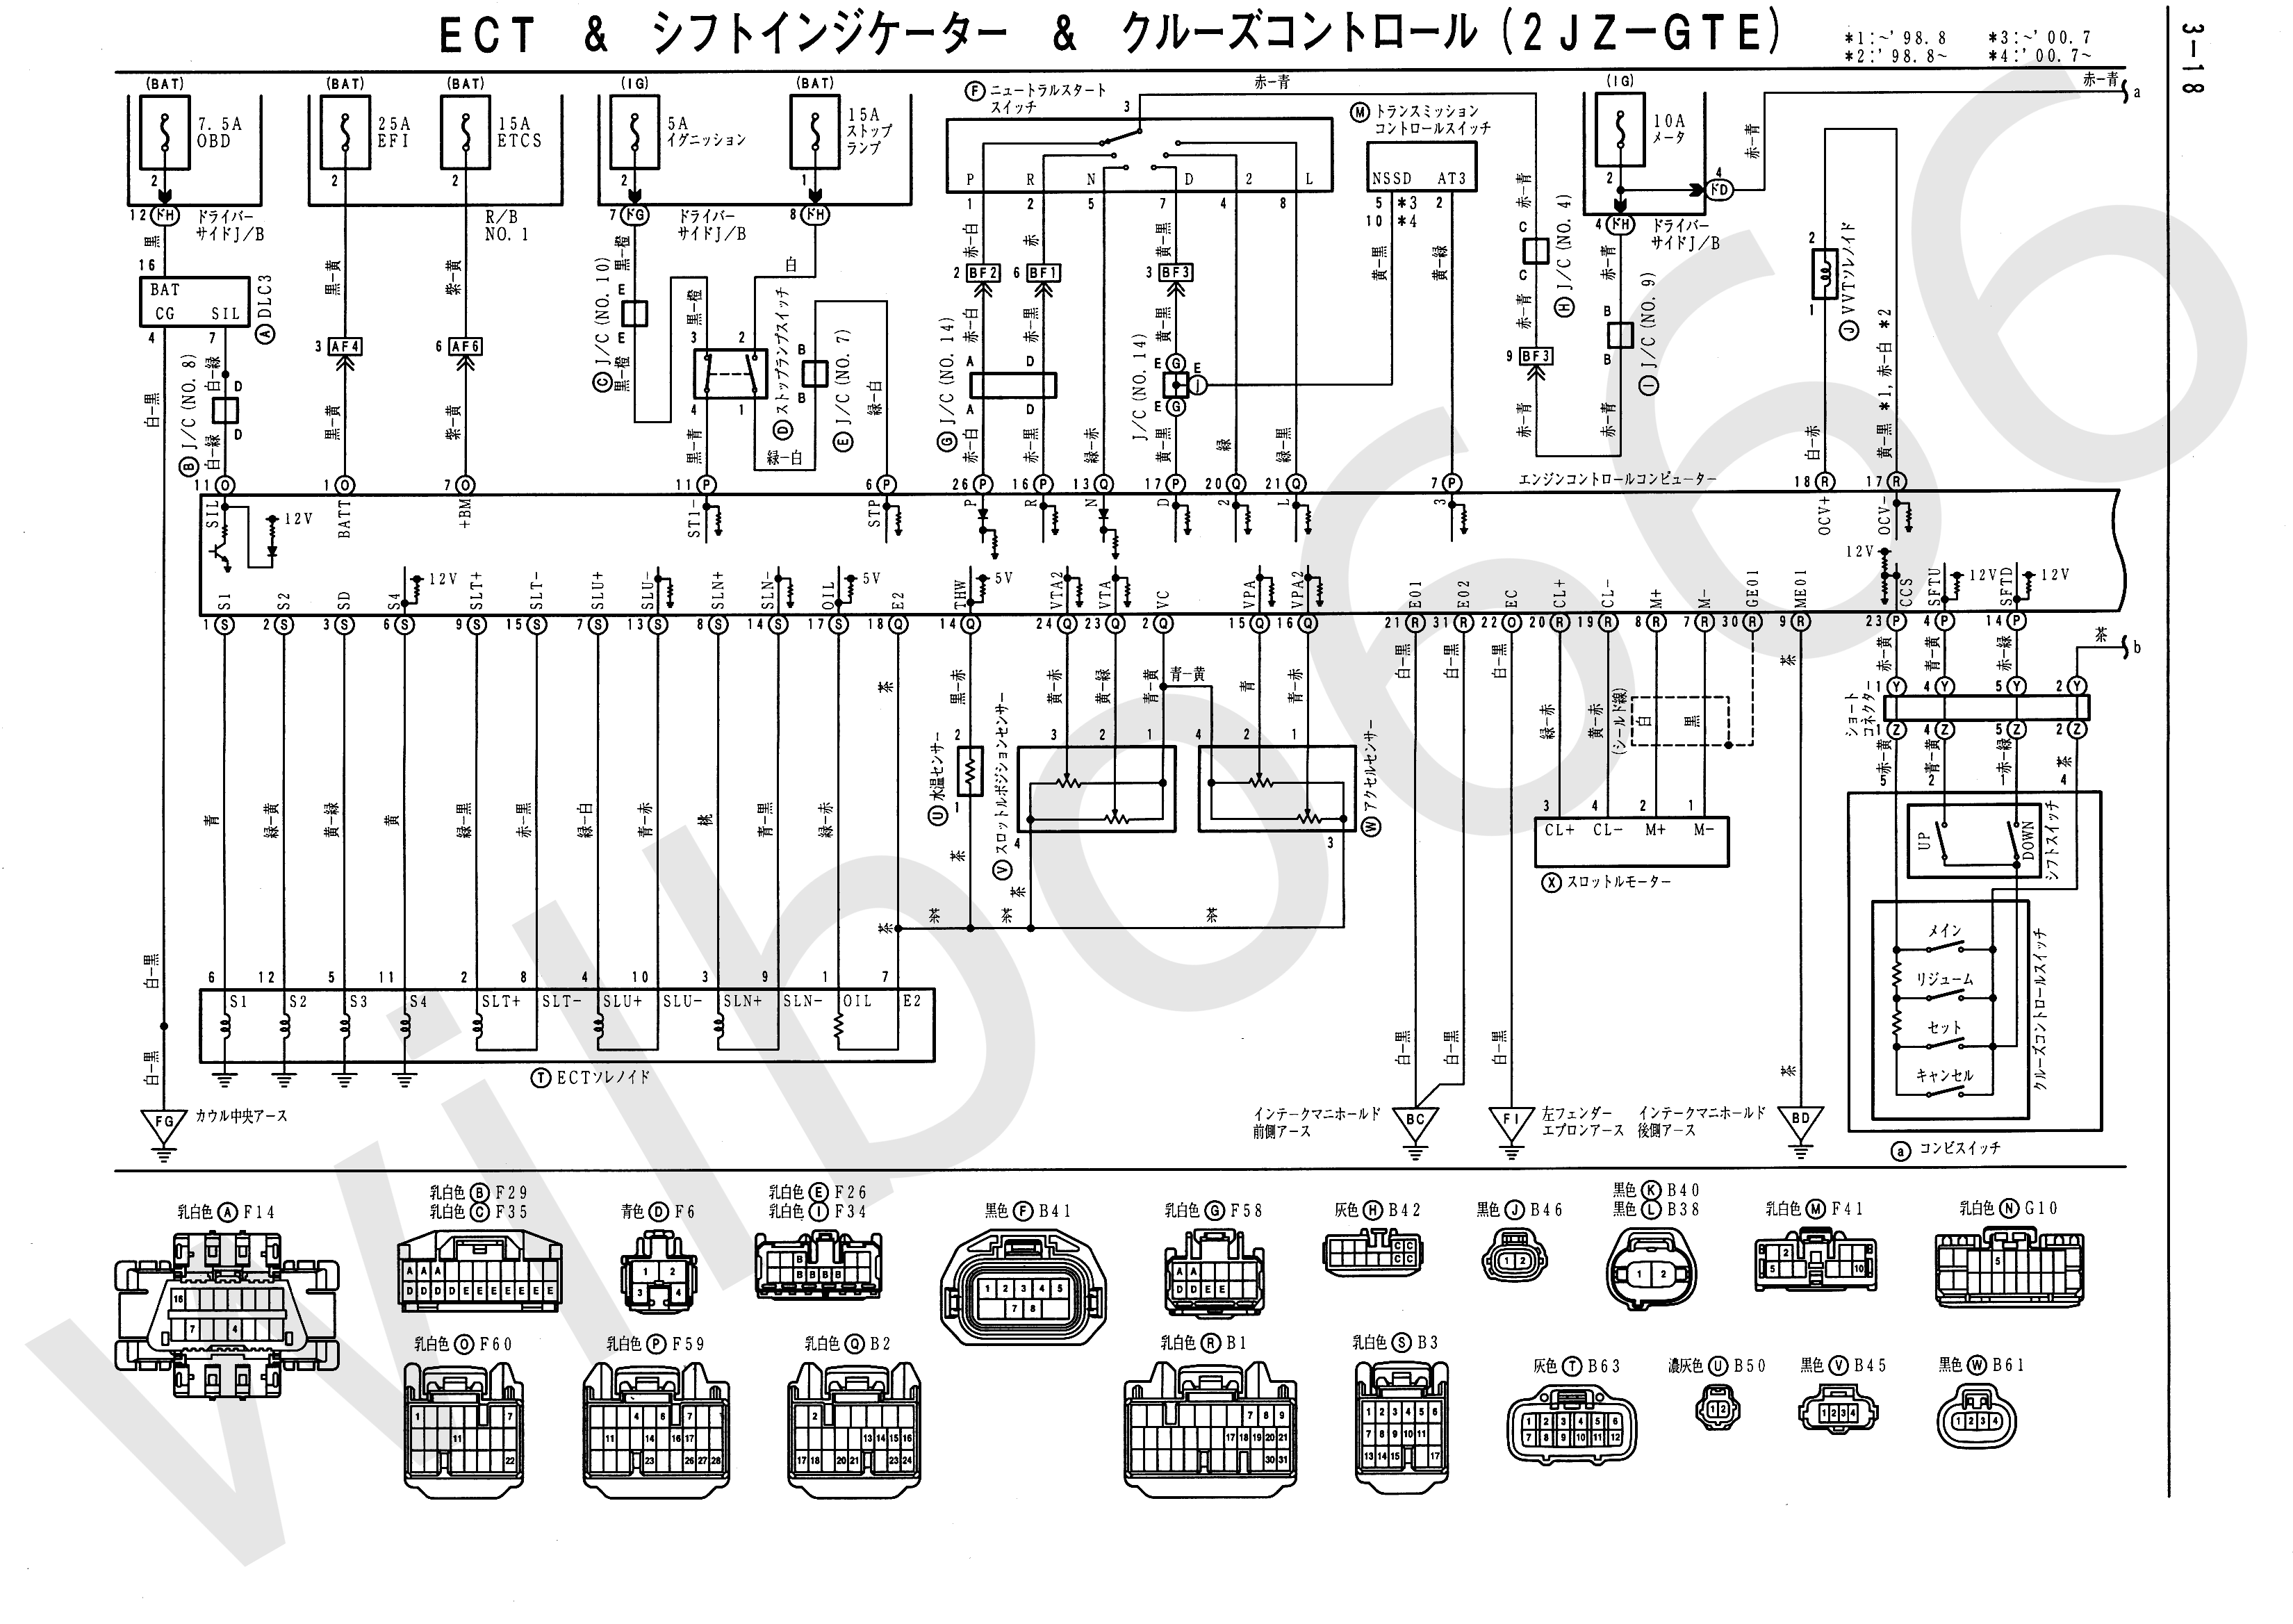 Wilbo666 2jz Gte Vvti Jzs161 Aristo Engine Wiring Avcr Diagram Toyota Diagrams